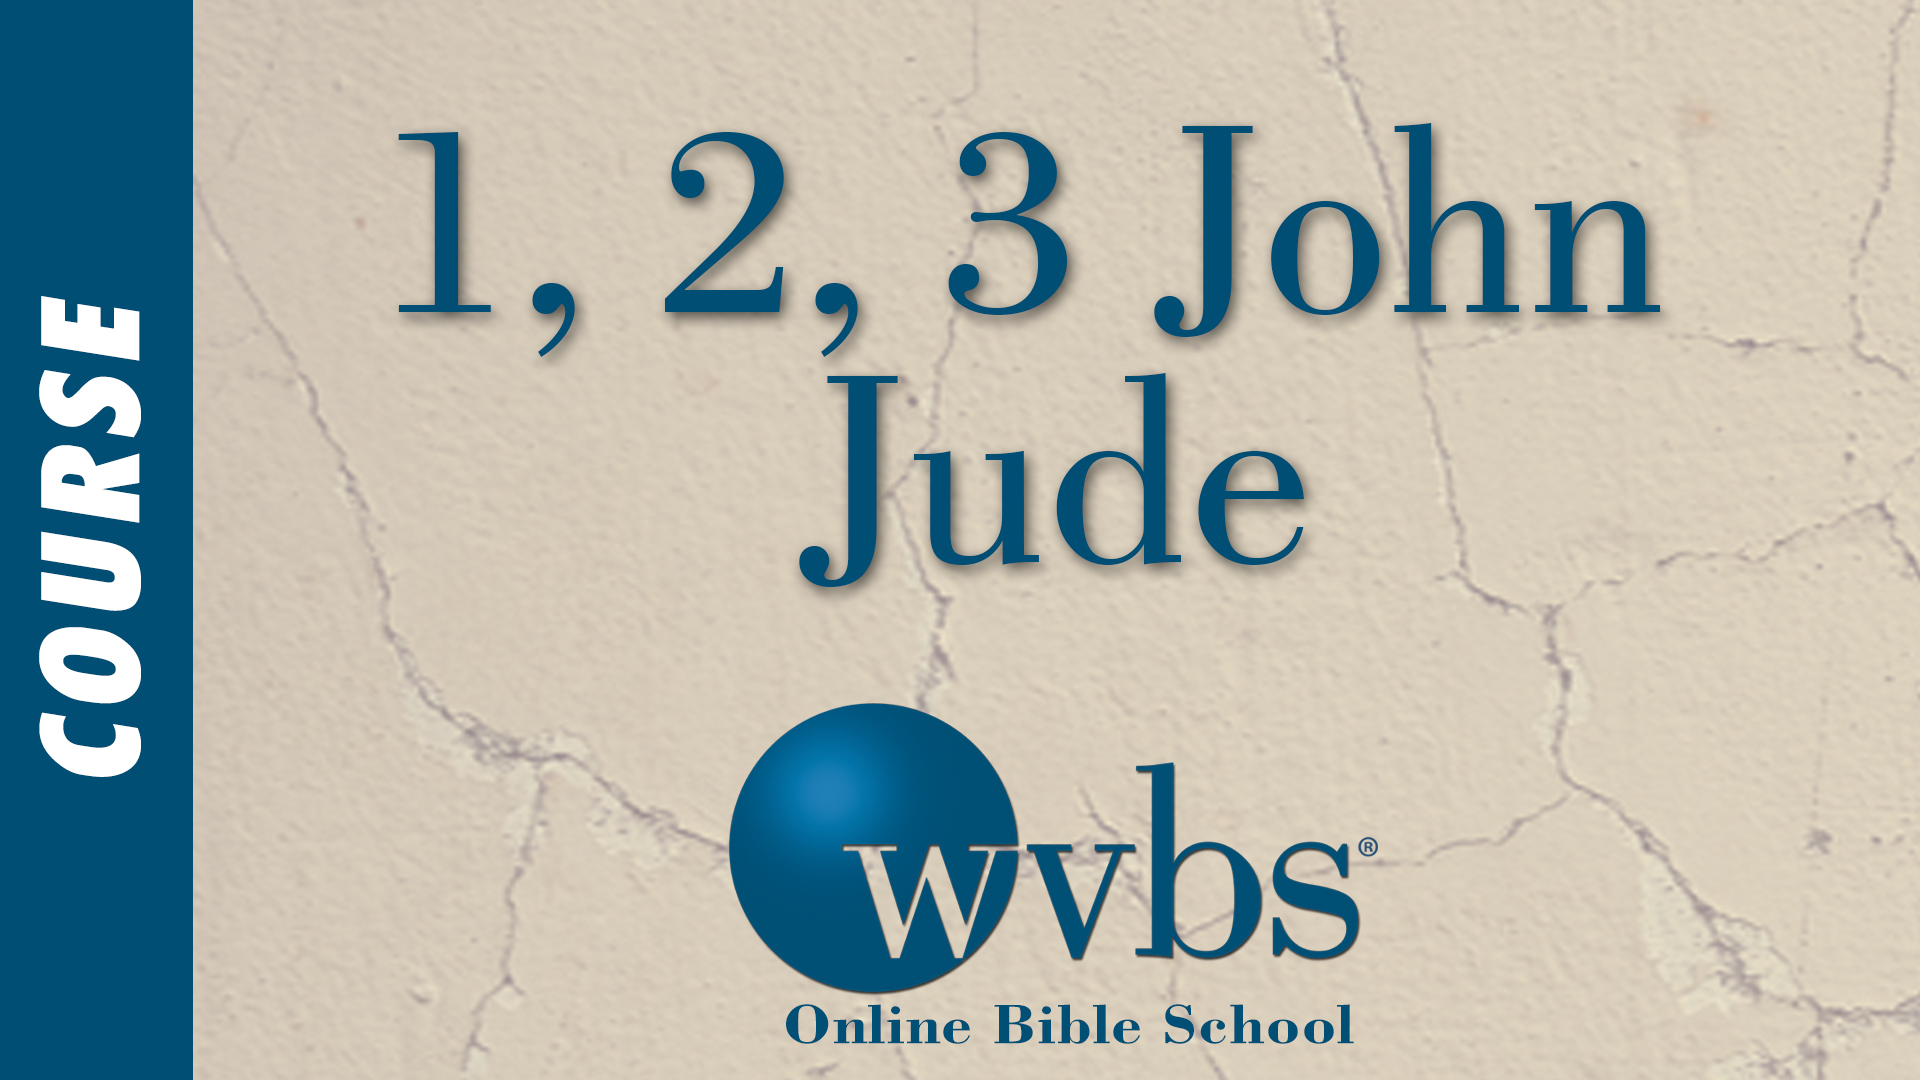 1st, 2nd, 3rd John and Jude (Online Bible School)